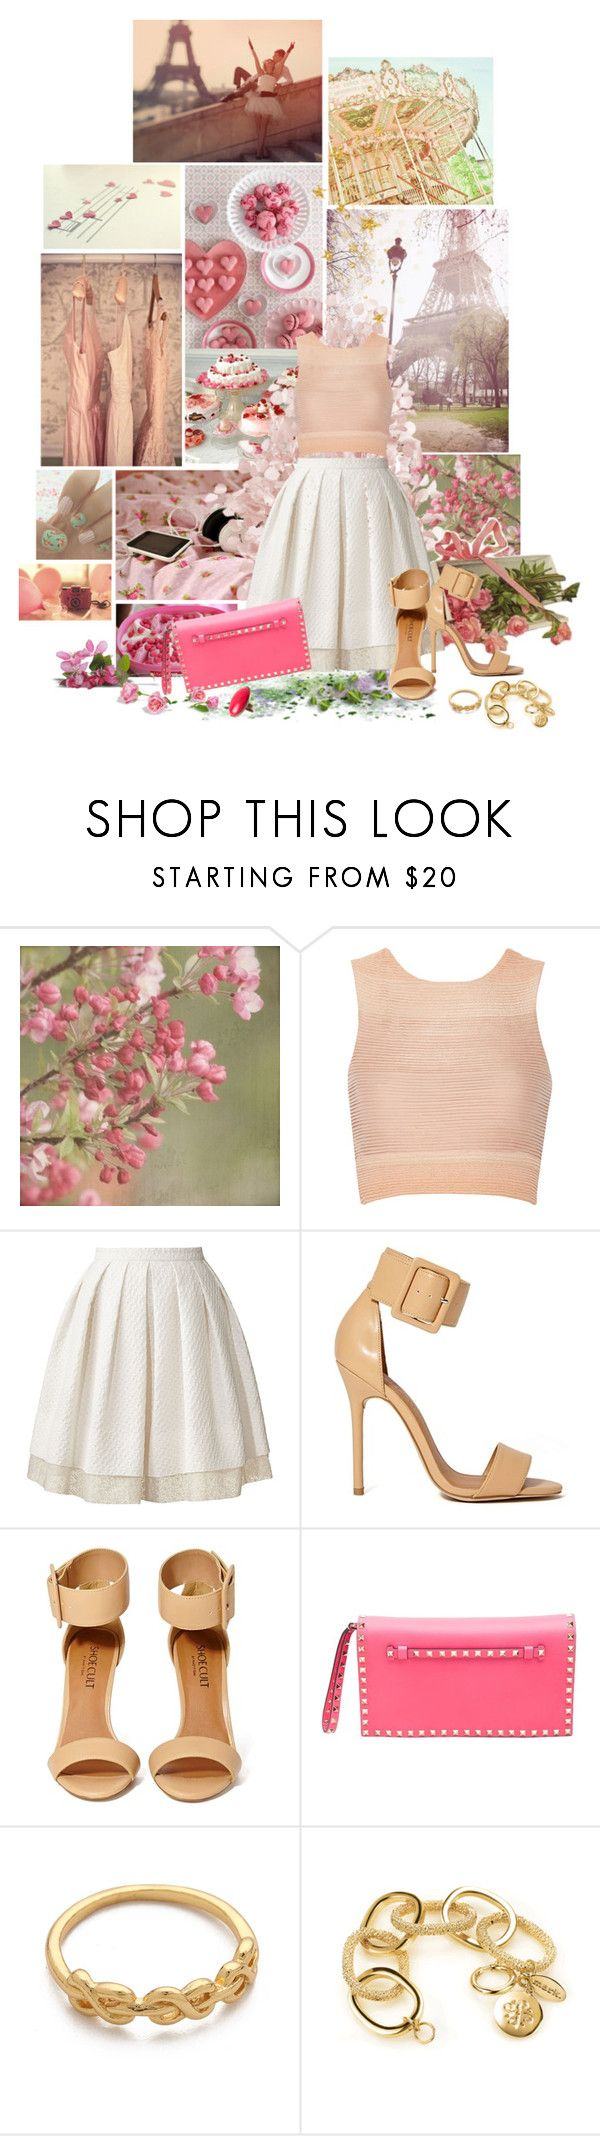 """""""This are a few of my favourite things"""" by littlemissnurse ❤ liked on Polyvore featuring Cotton Candy, Ladurée, Jonathan Simkhai, Orla Kiely, Shoe Cult, Valentino, Gorjana and H&M"""